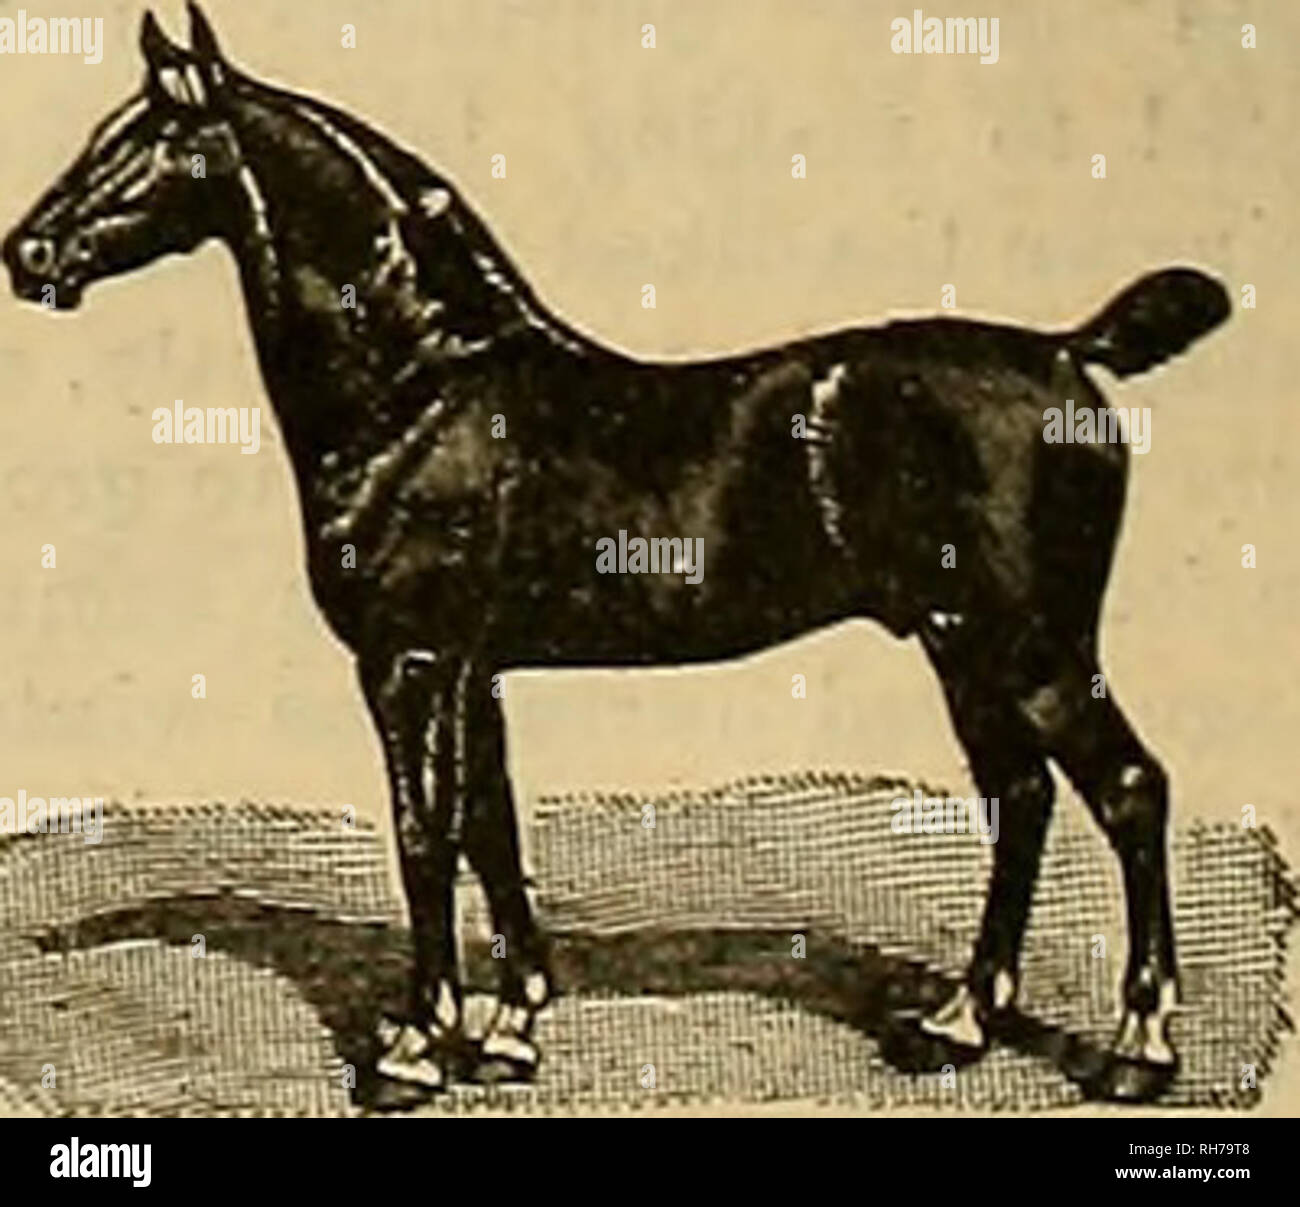 . Breeder and sportsman. Horses. 12 ®*w f$xeci>ev ani> ^povisntan _3VLY 15. 1906 The Scrub Must Go. The Stod-mun and Farmer for nearly a quarter of a . entury has been trying to tell its readers the advantages to be gained by breeding op their live clock. There was a time when the margin between the price of good cattle and scrubB was not ao great as now. There are yet some ' stock and uBe only the best femaleB and pure bred males for breeding purposes. It pays to do so now, and each succeeding year it will pay bigger. The dogy has had bis day. The Swine Industry. One of the great indus - Stock Image